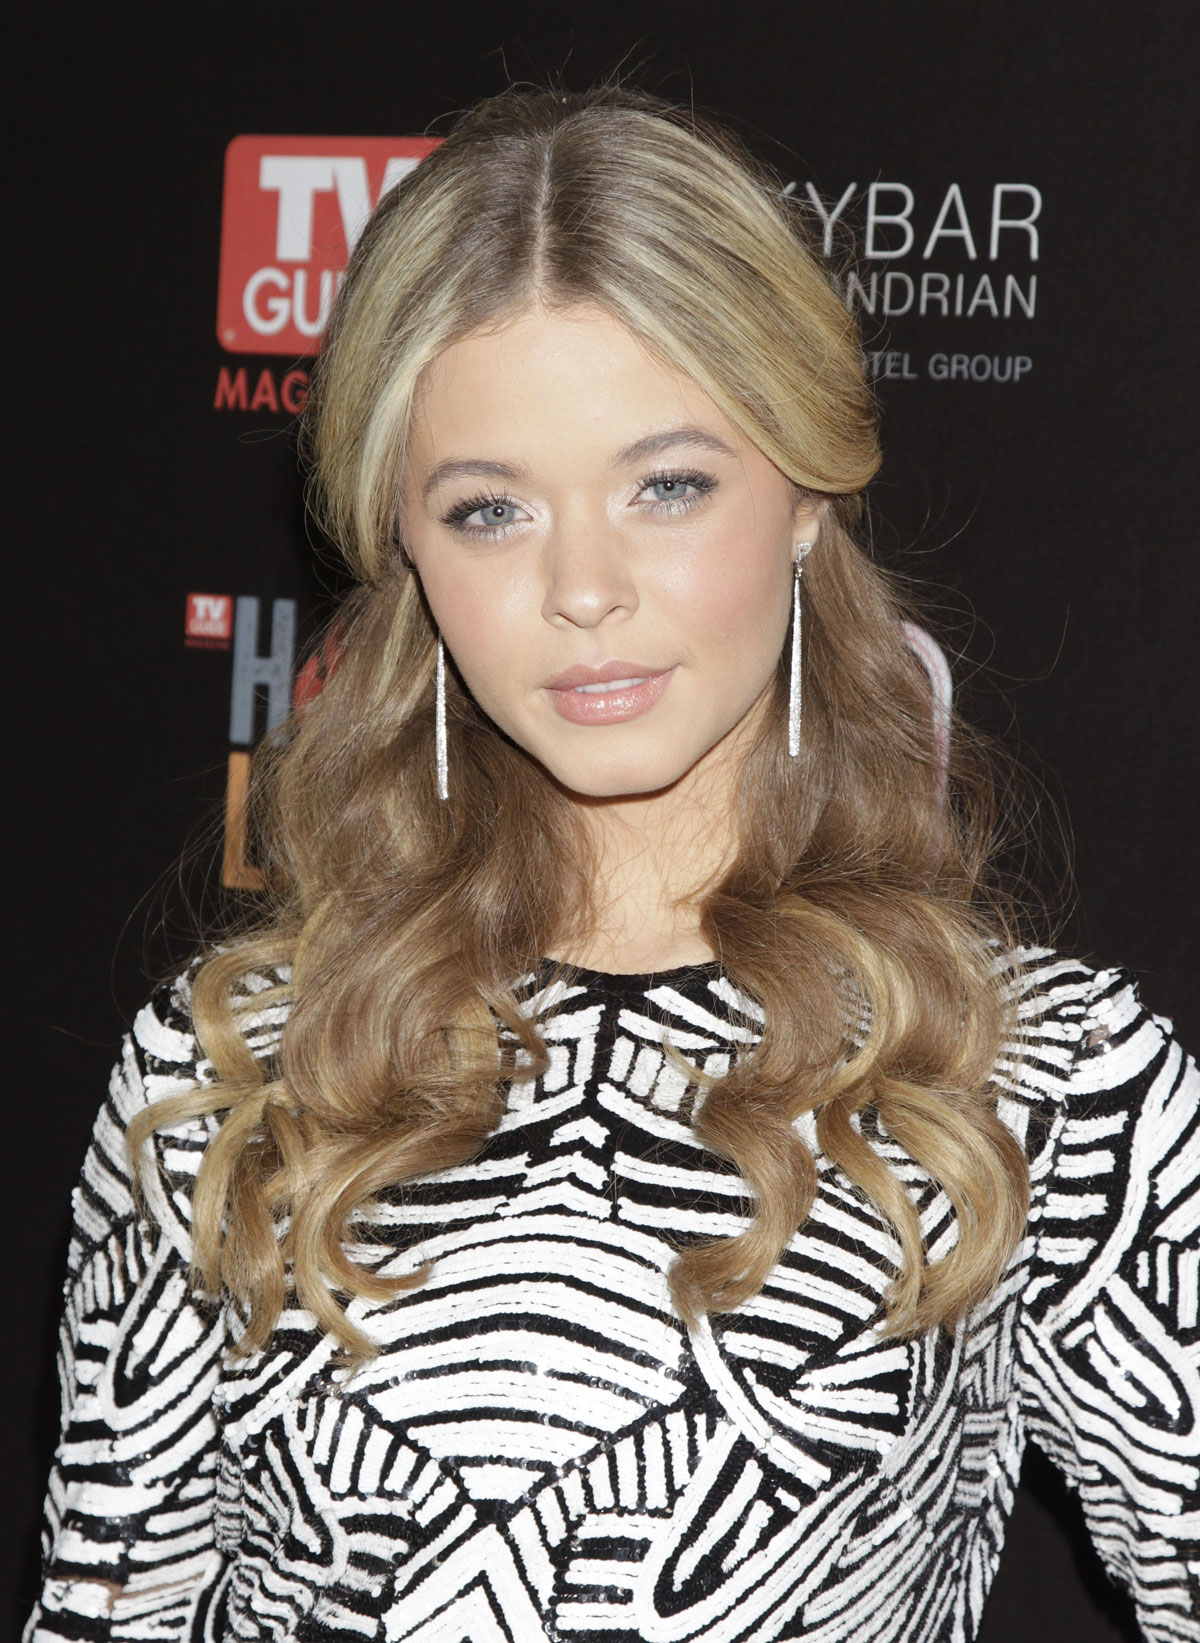 Sasha pieterse at 2012 tv guide magazine hotlist party in hollywood sasha pieterse at tv guide magazine hotlist party thecheapjerseys Images